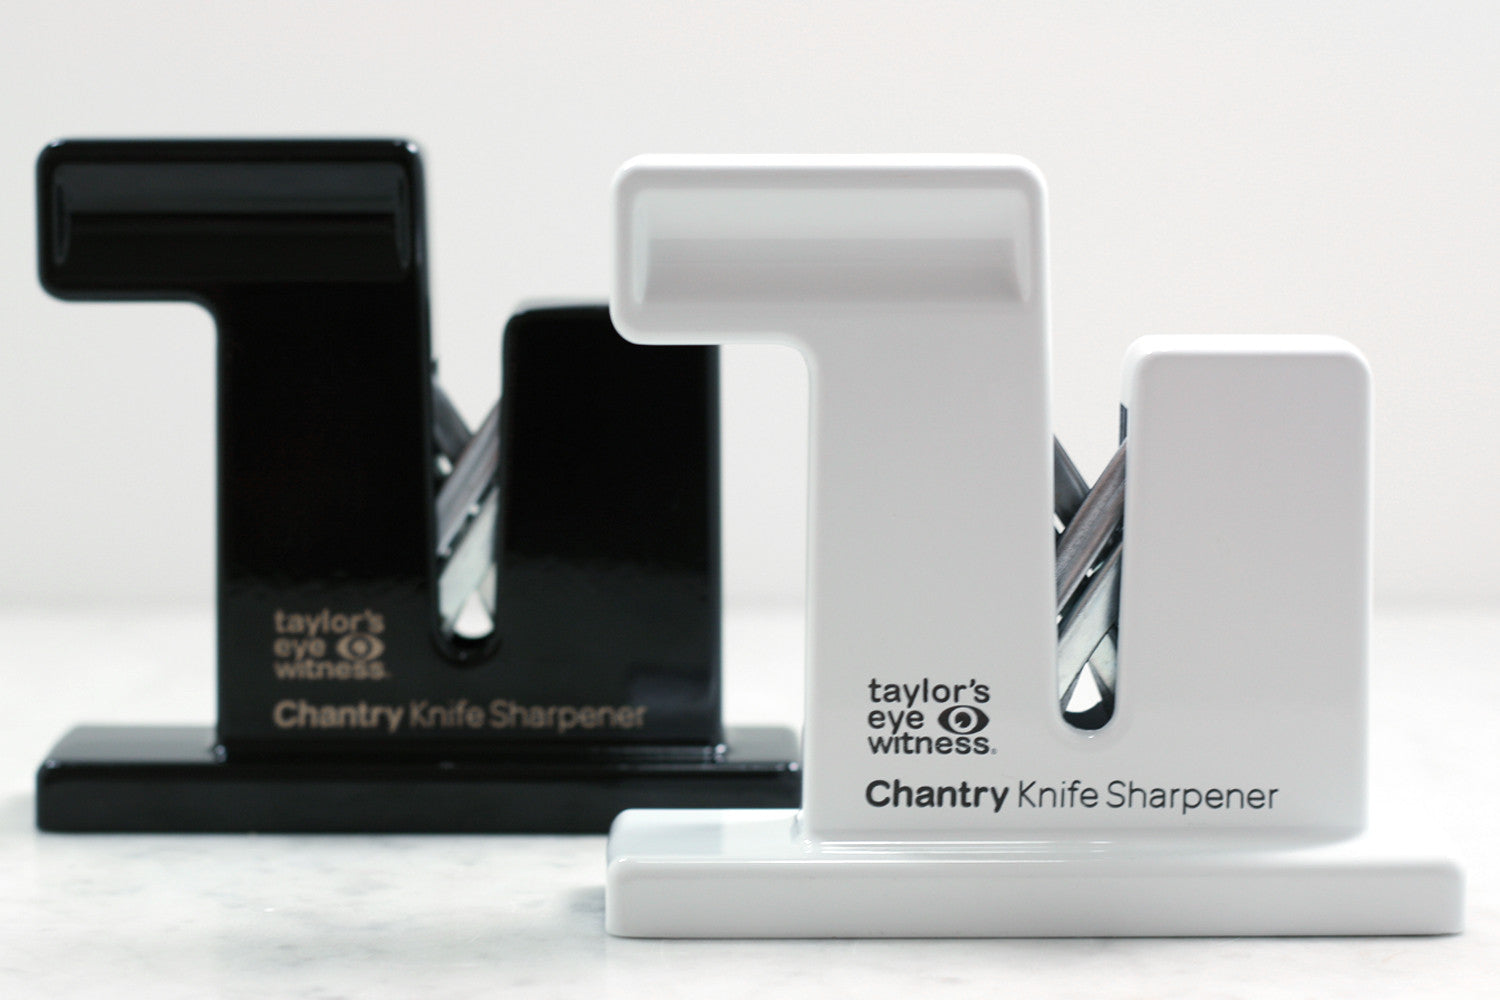 Chantry Knife Sharpener